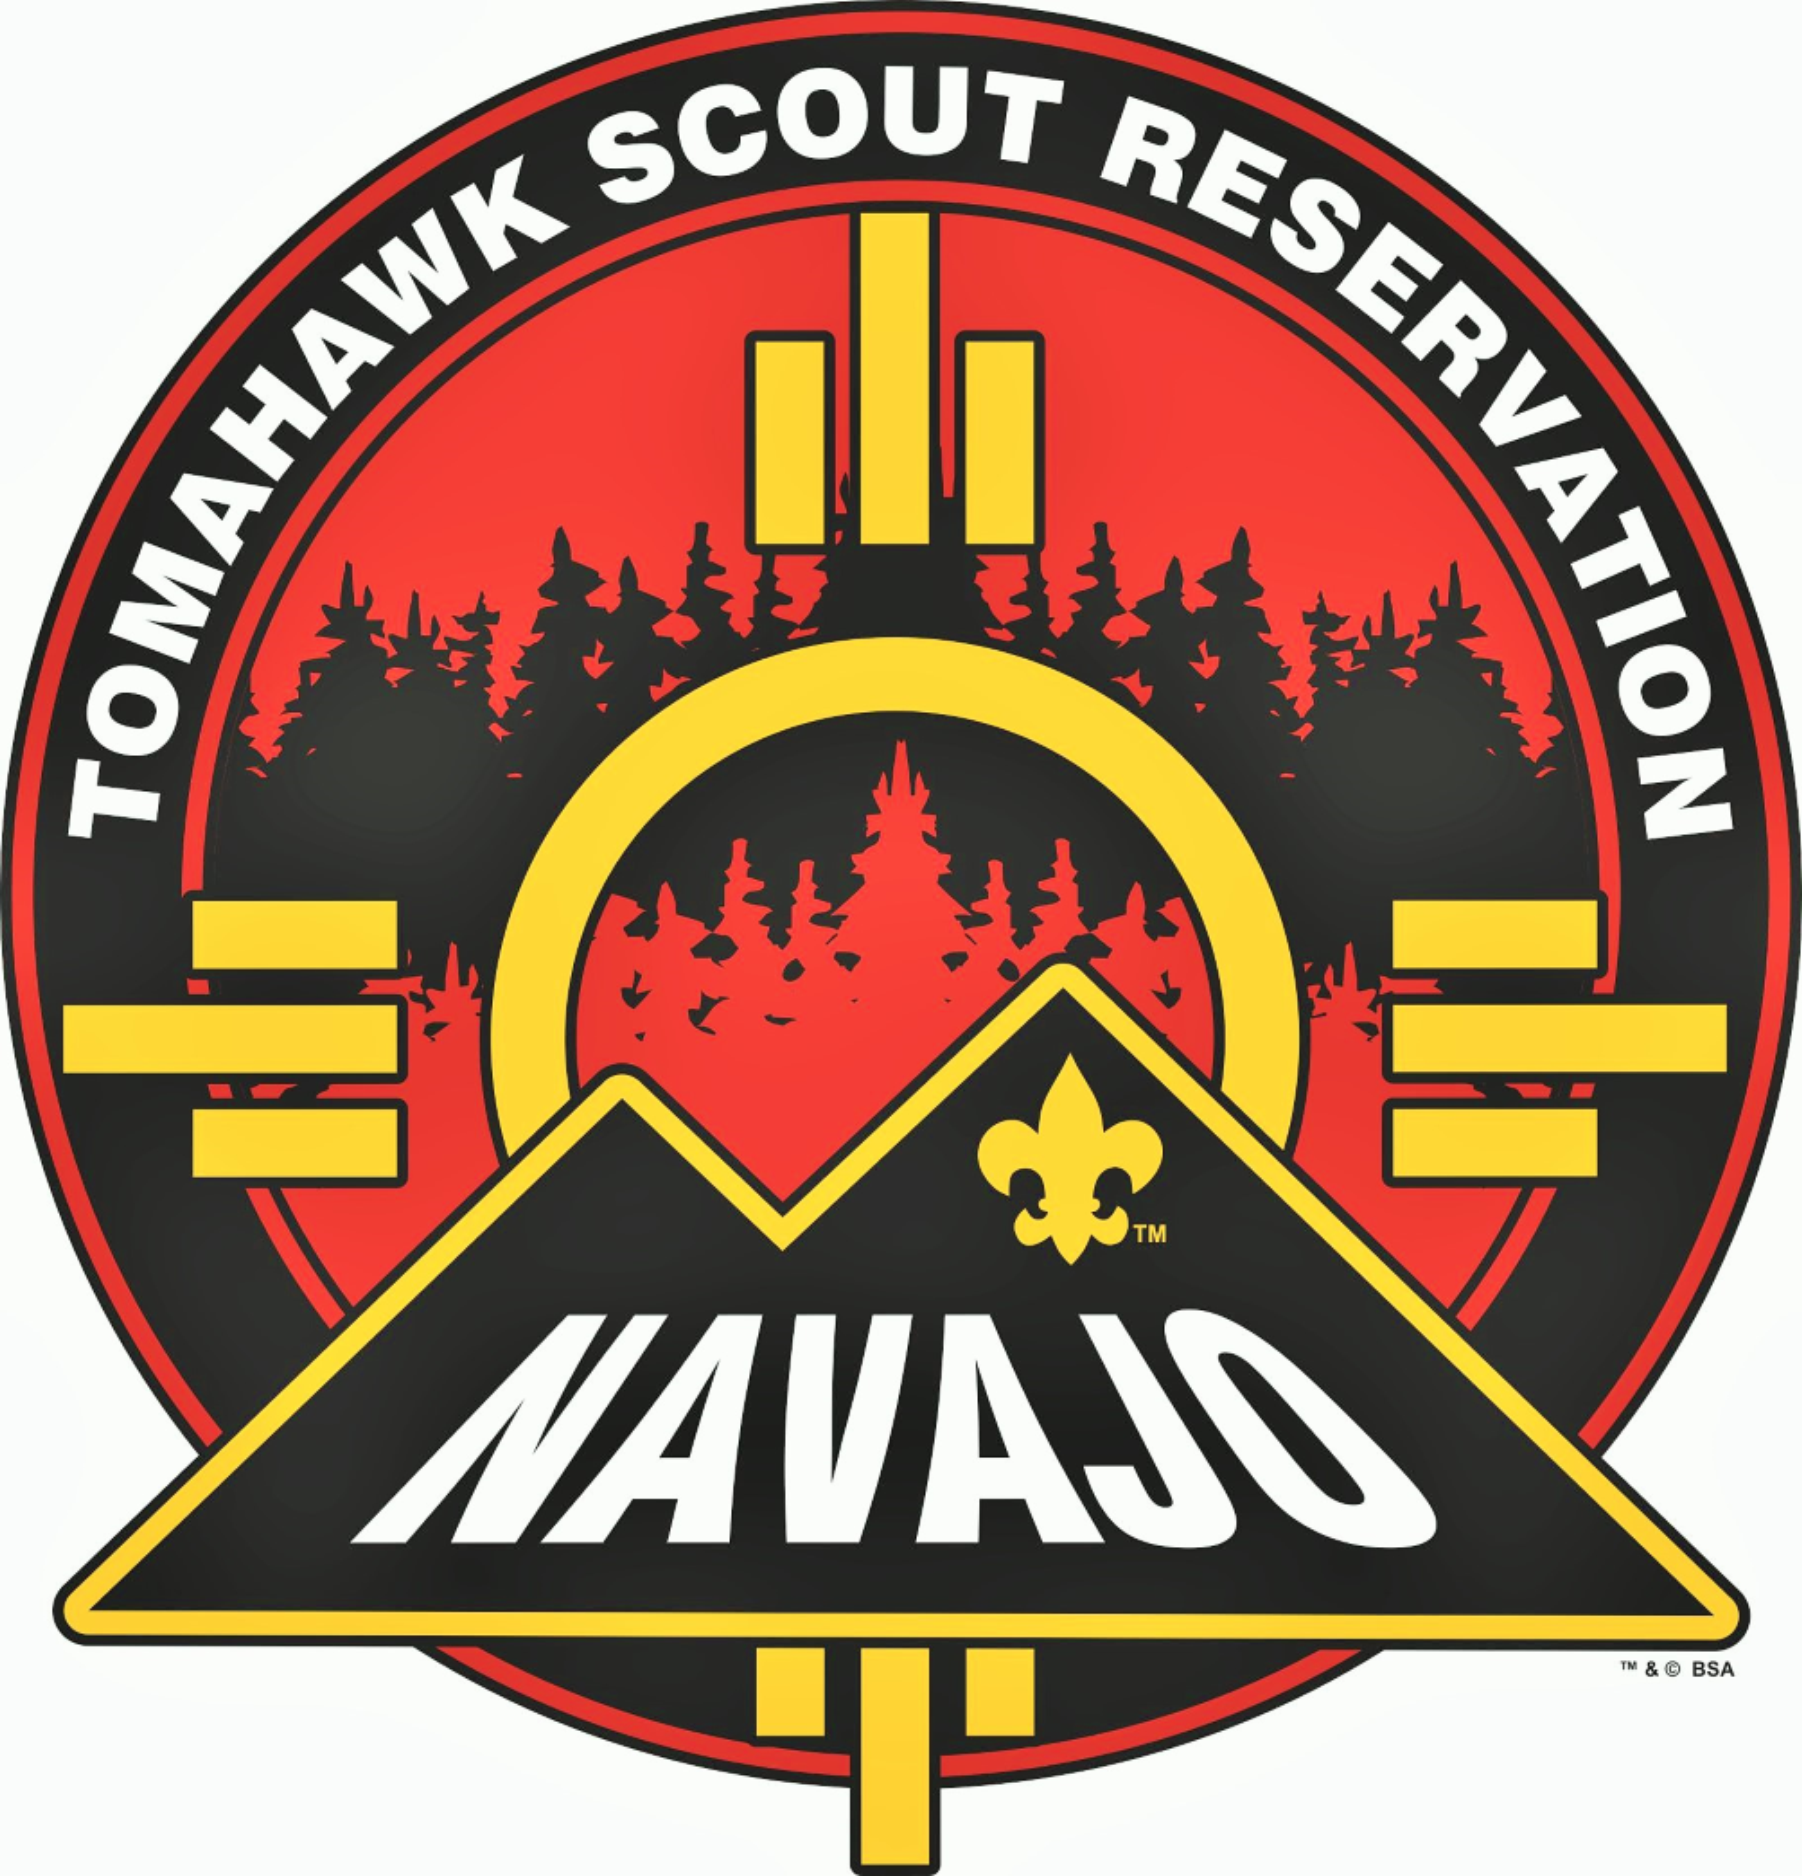 Northern star council arrow of light camp navajo tsr arrow of light camp navajo tsr buycottarizona Choice Image